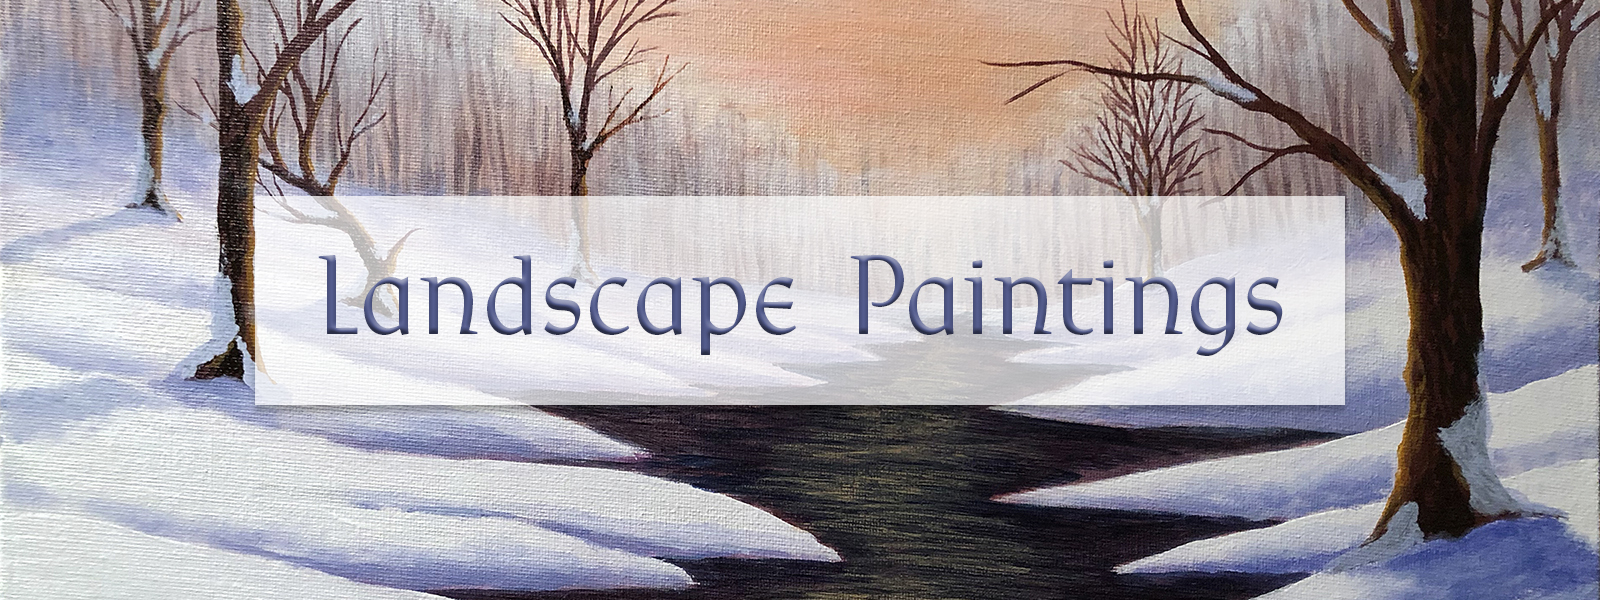 KJ's Art Studio ~ KJsArtStudio.com | Original Landscape Paintings by Fine Artist, KJ Burk.